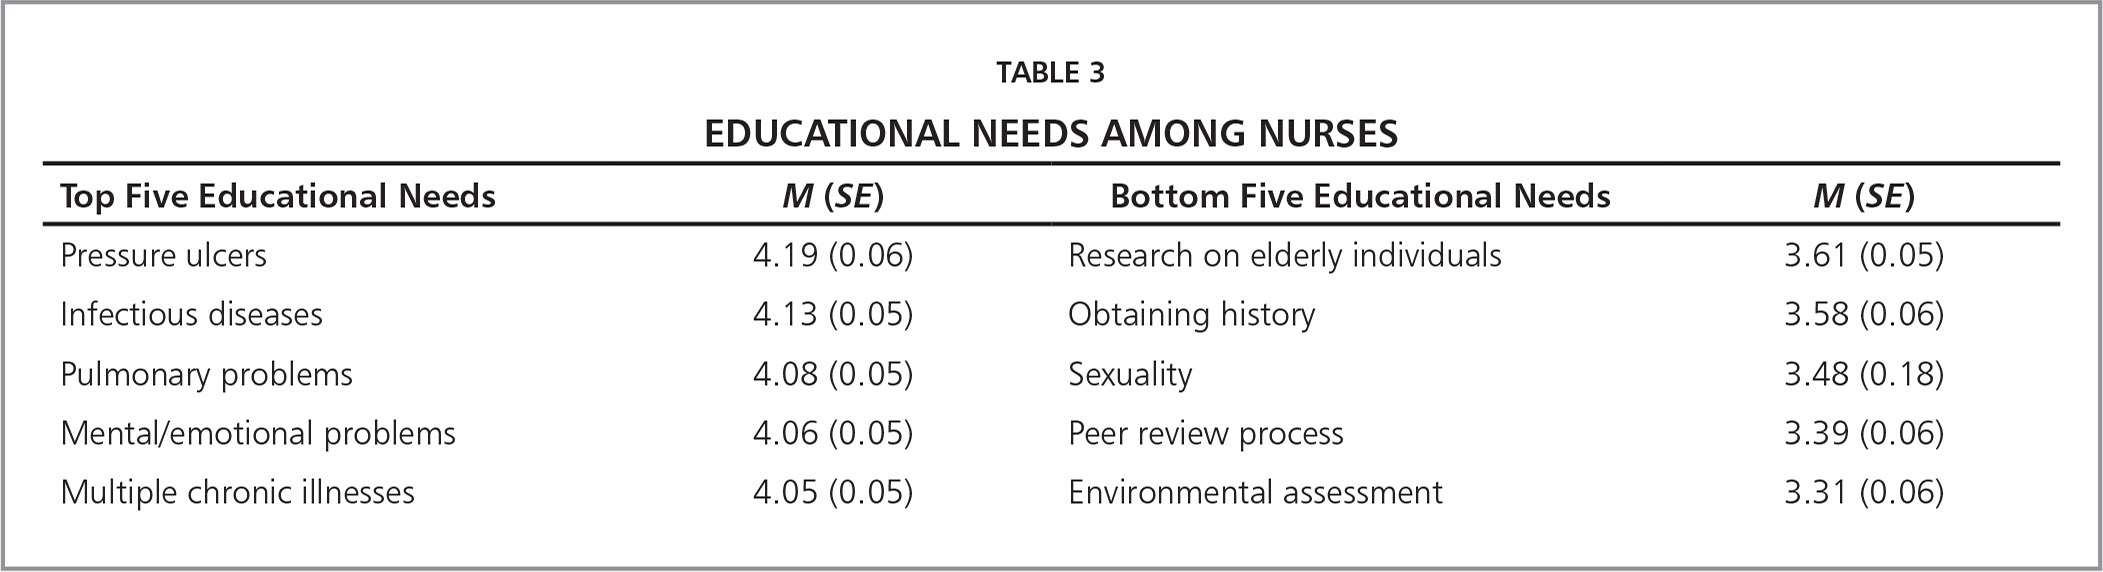 Continuing Education Preferences, Facilitators, and Barriers